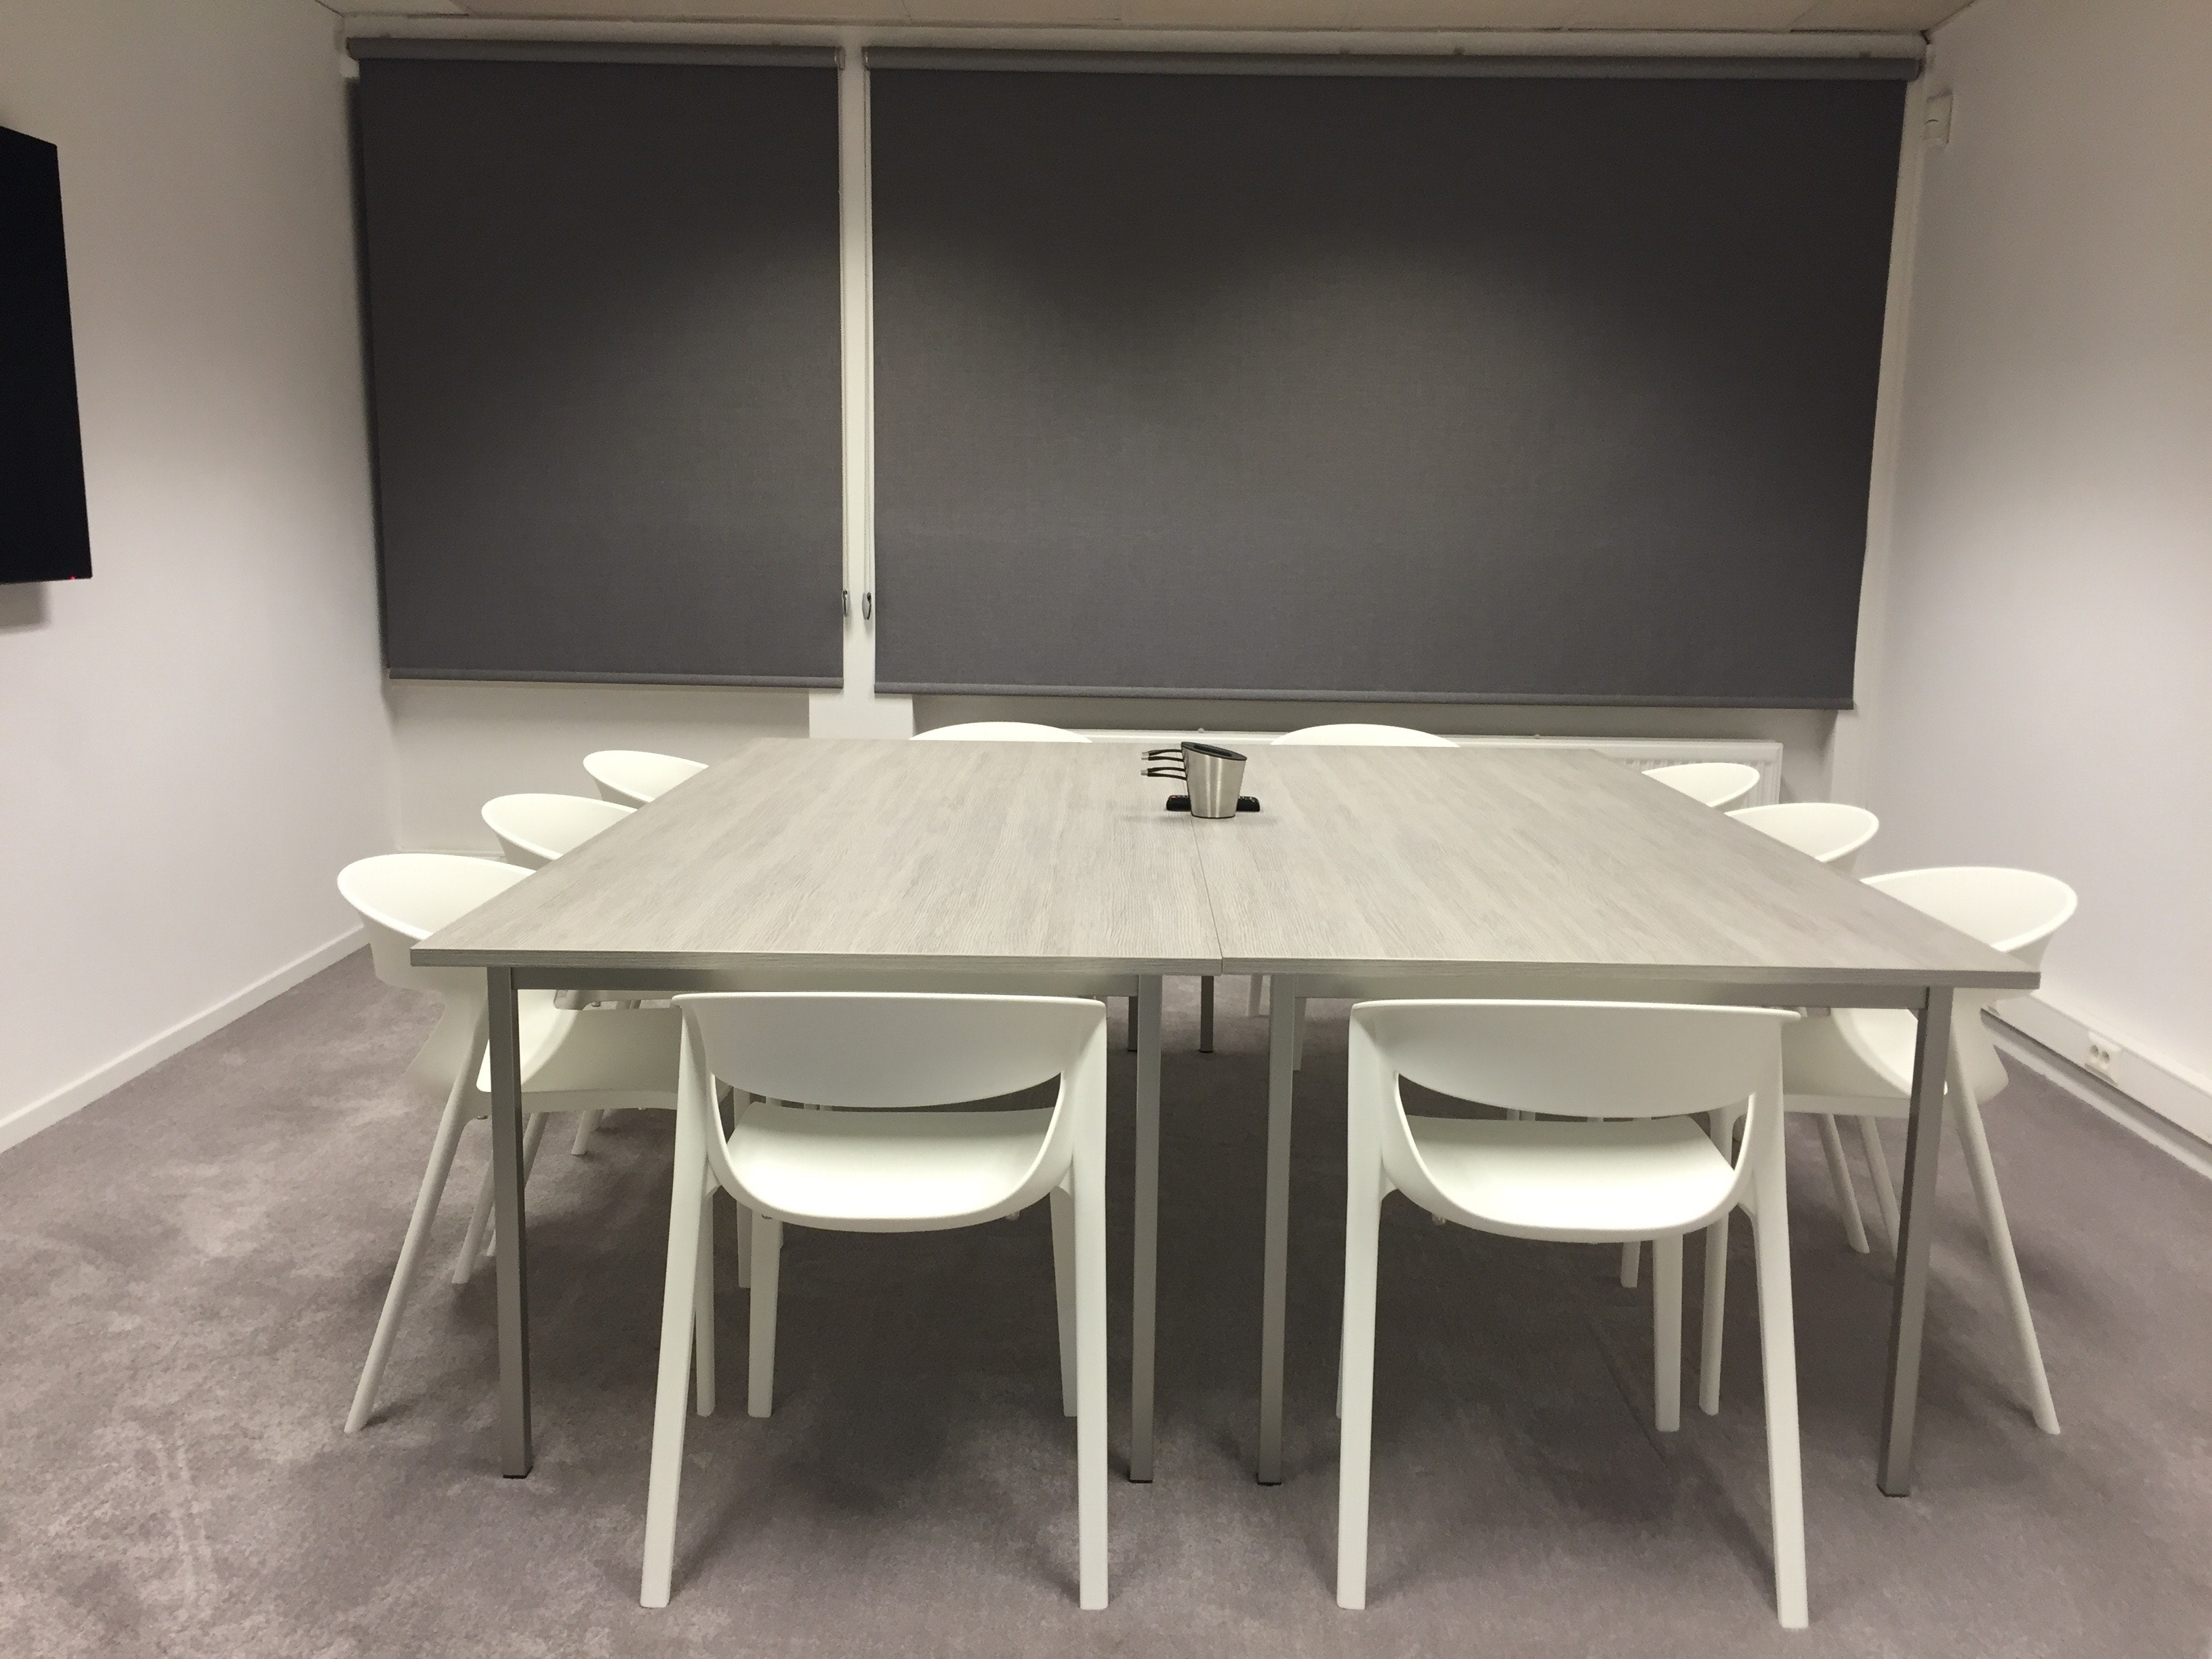 What makes a good meeting room?